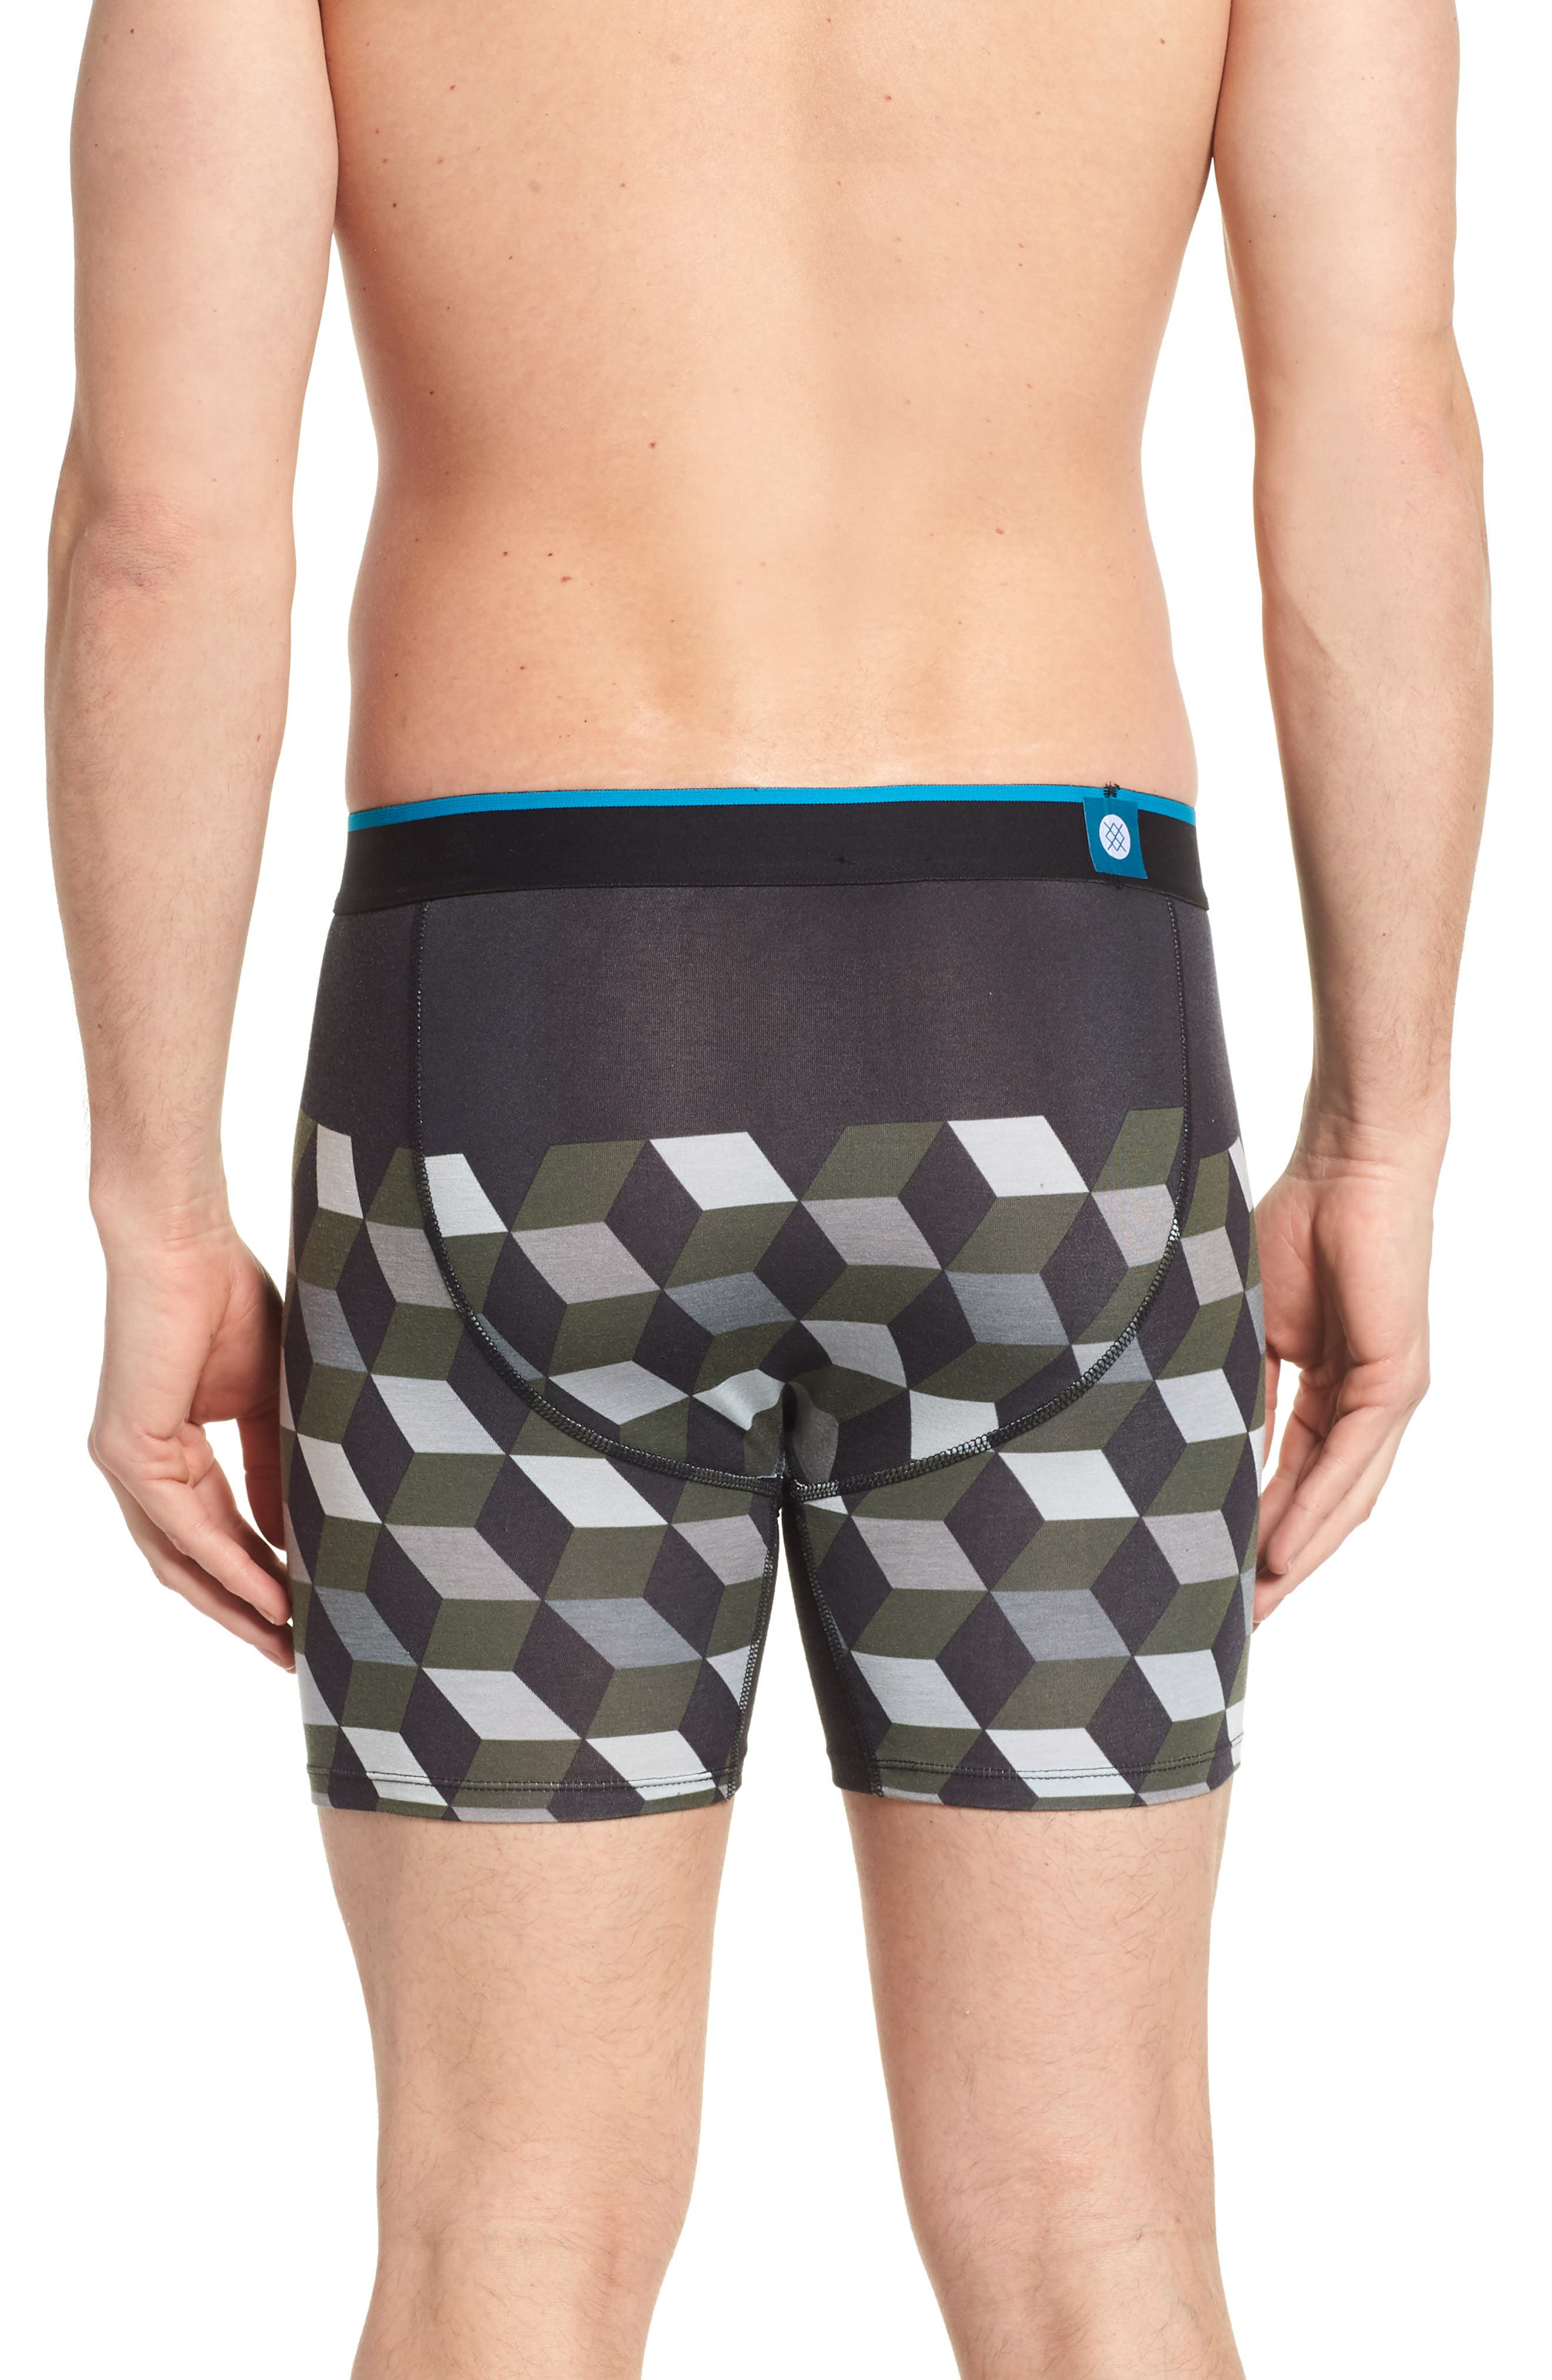 Cubes Wholester Boxer Briefs,                             Alternate thumbnail 2, color,                             Grey